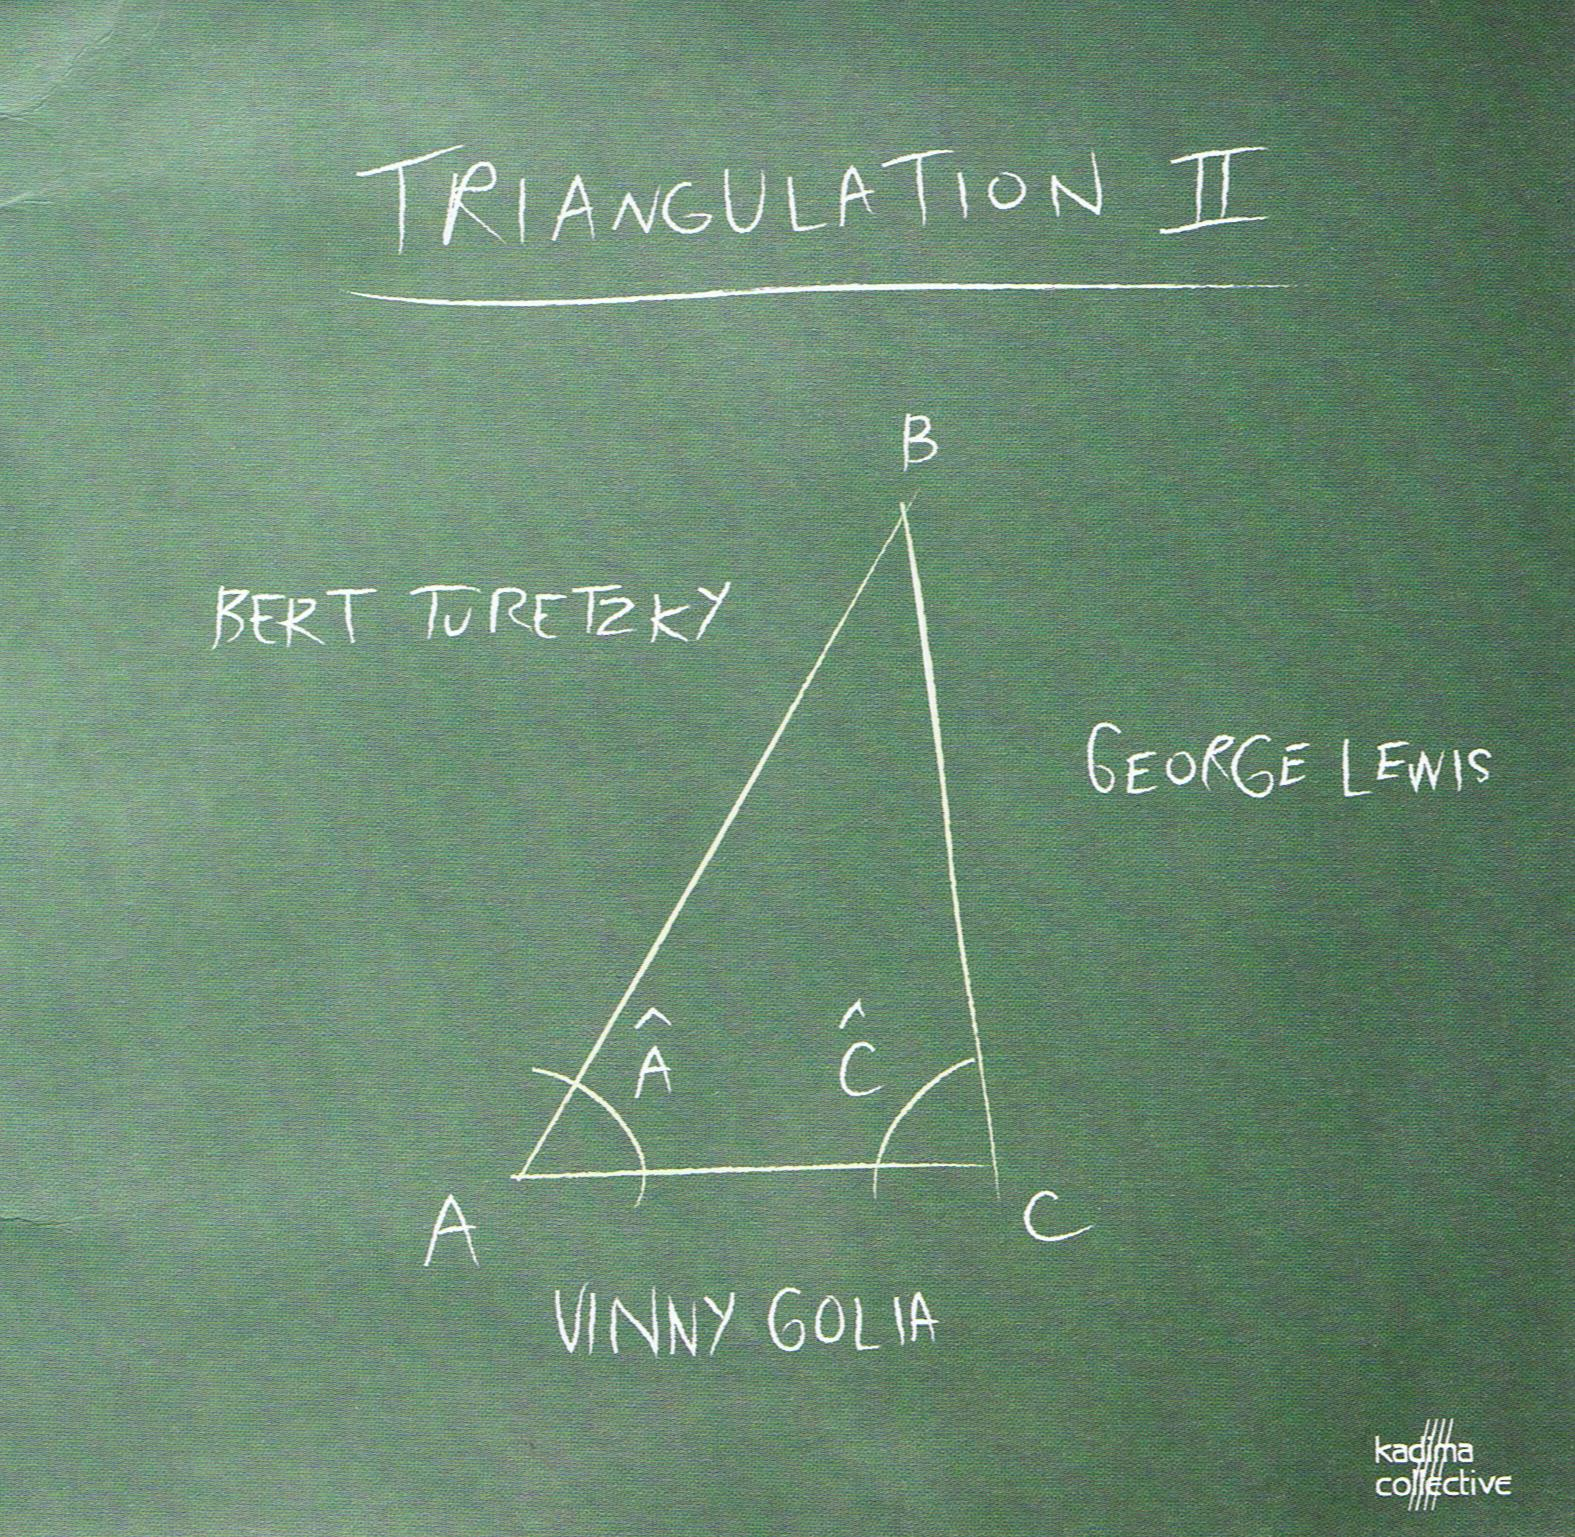 January 2011 The Free Jazz Collective Guitar Wiring Blog Diagrams And Tips Triangulation Ii Kadima 30 2010